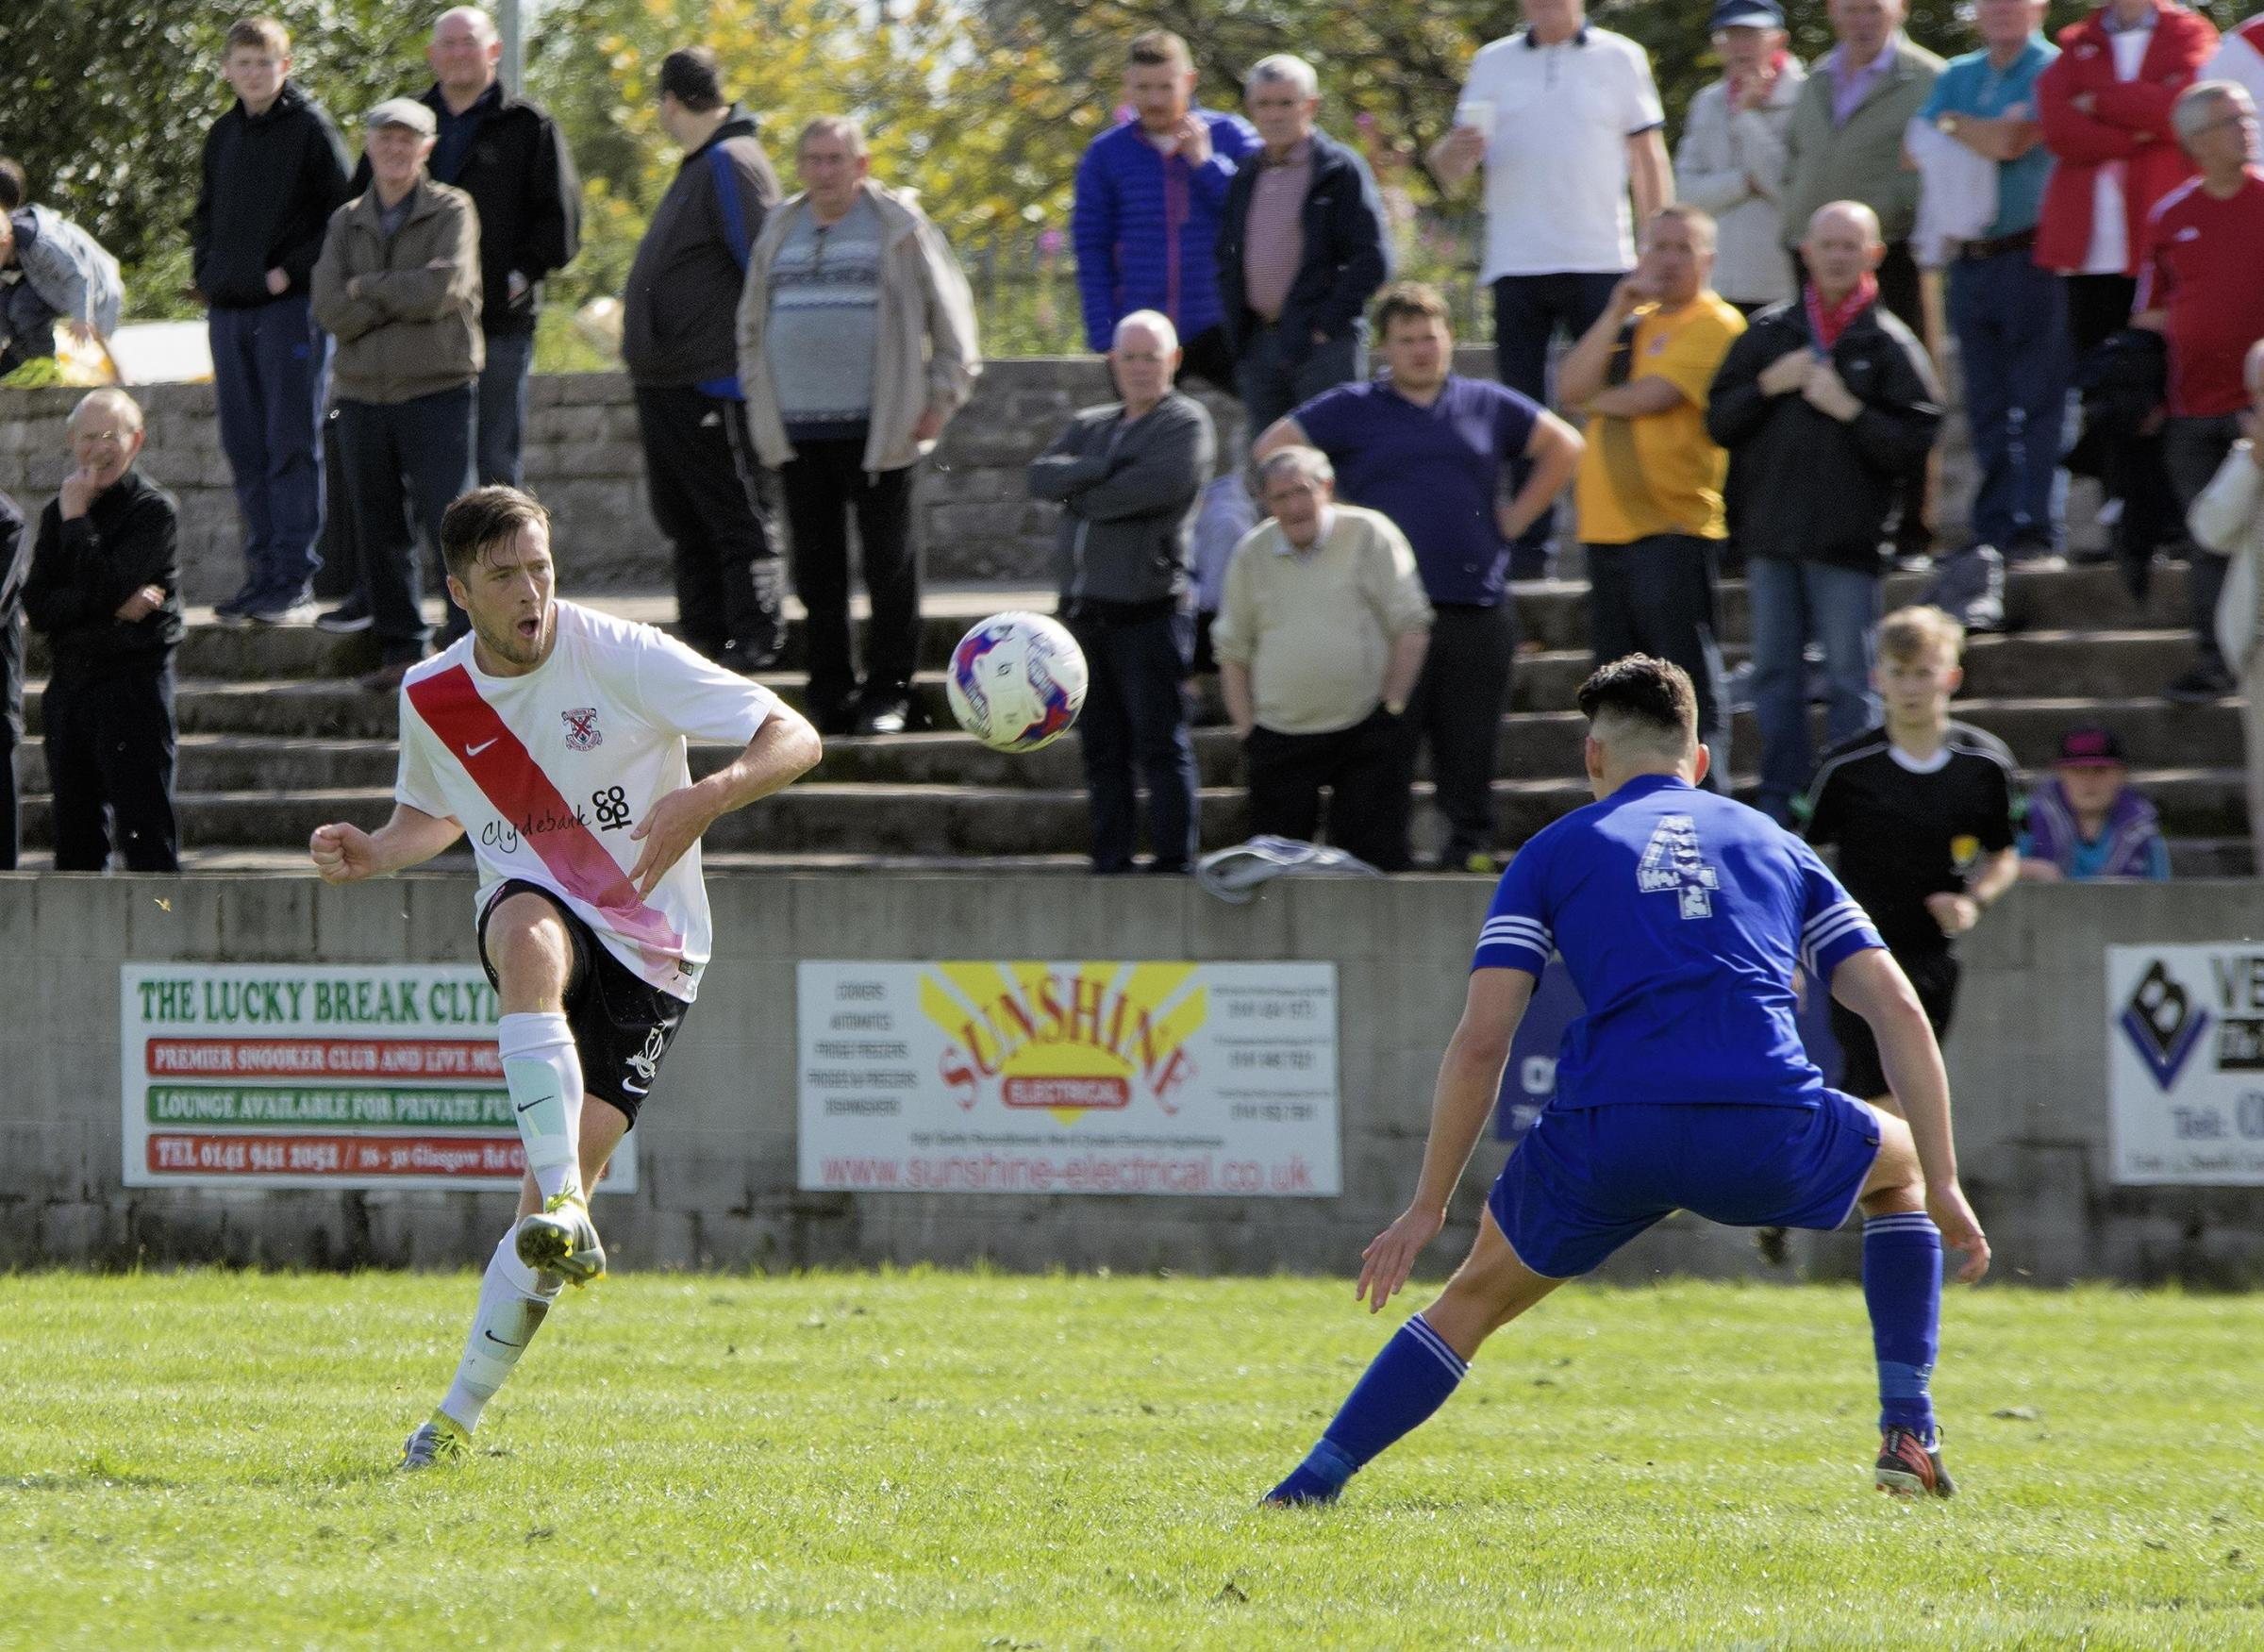 Holm sweet Home for Clydebank and Yoker